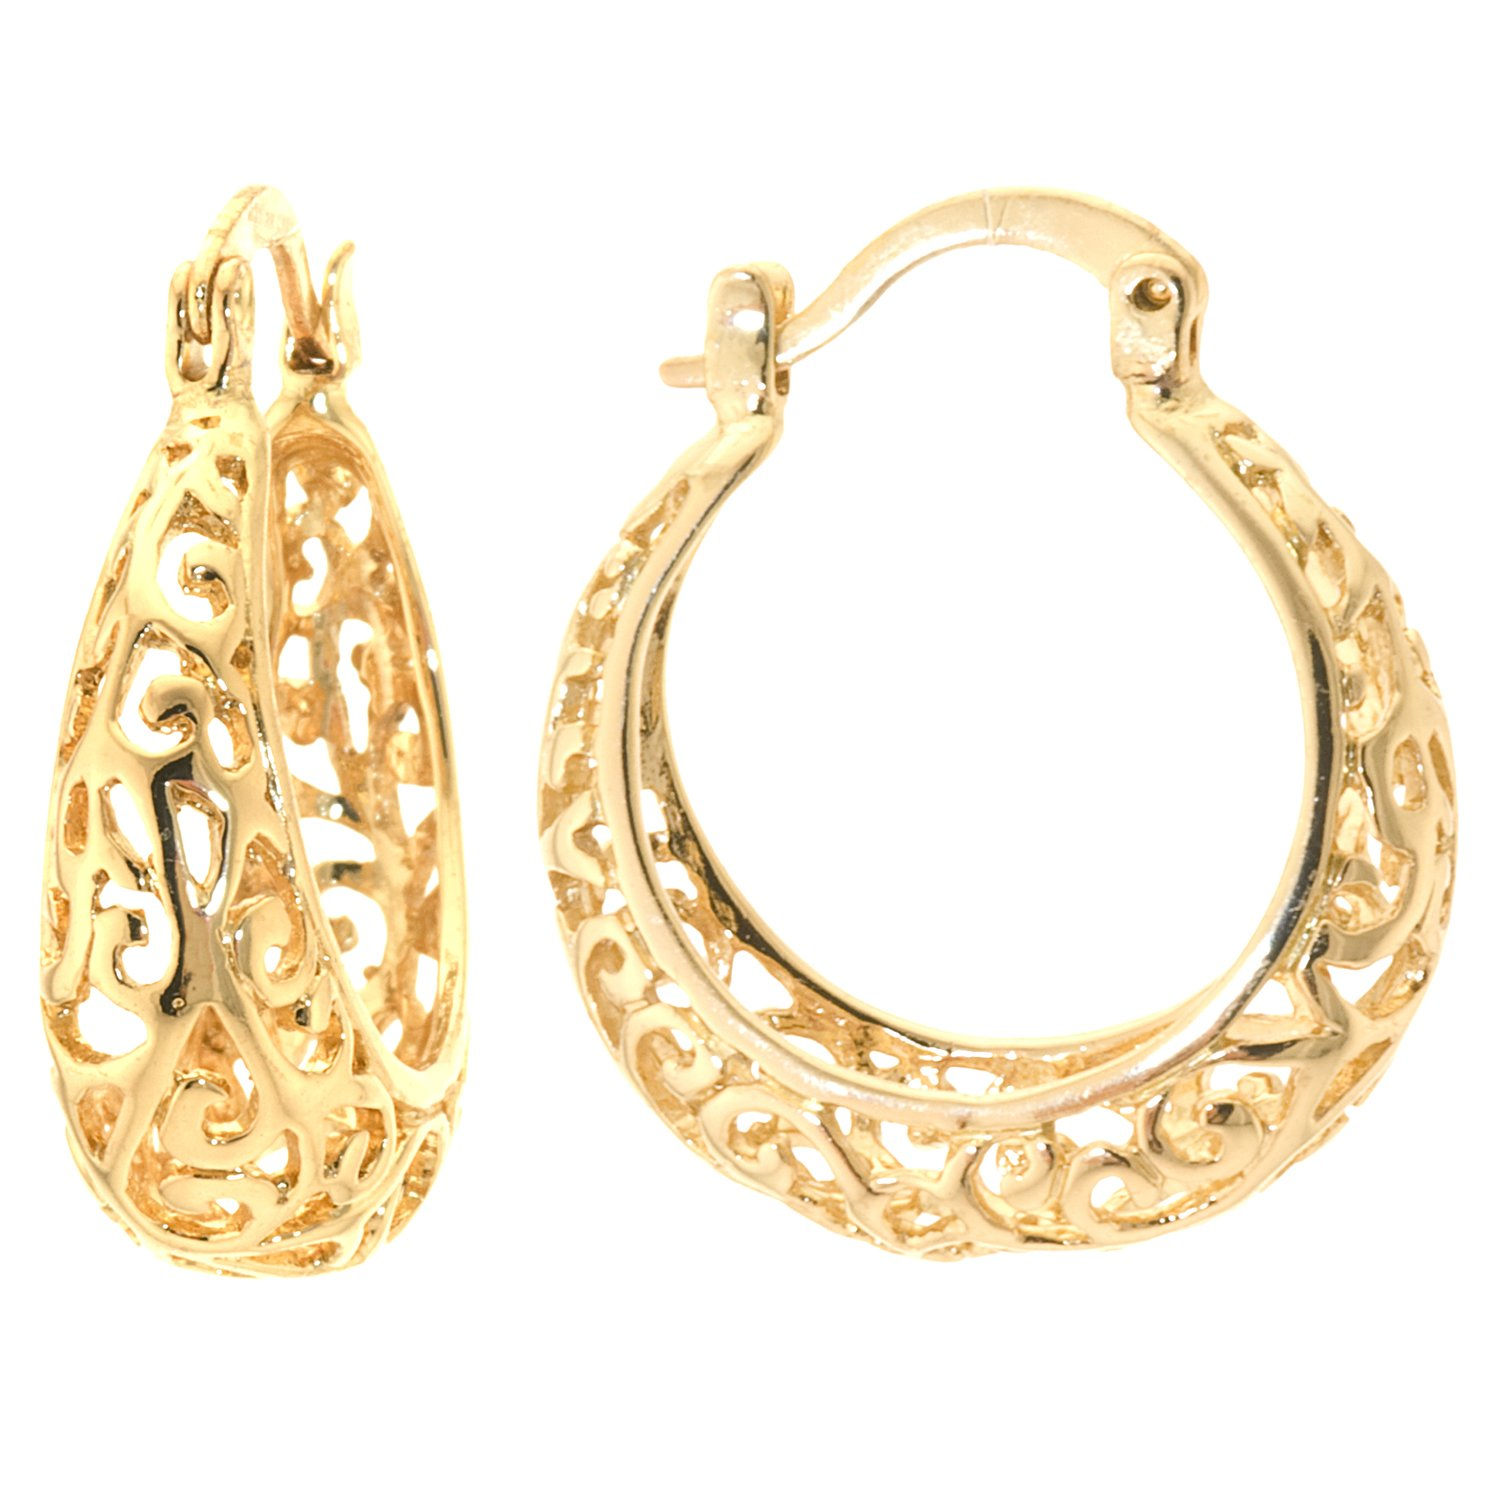 Silver on the Web 24K Gold Plated Filigree Hoop Earrings, (1.05'' Diameter)